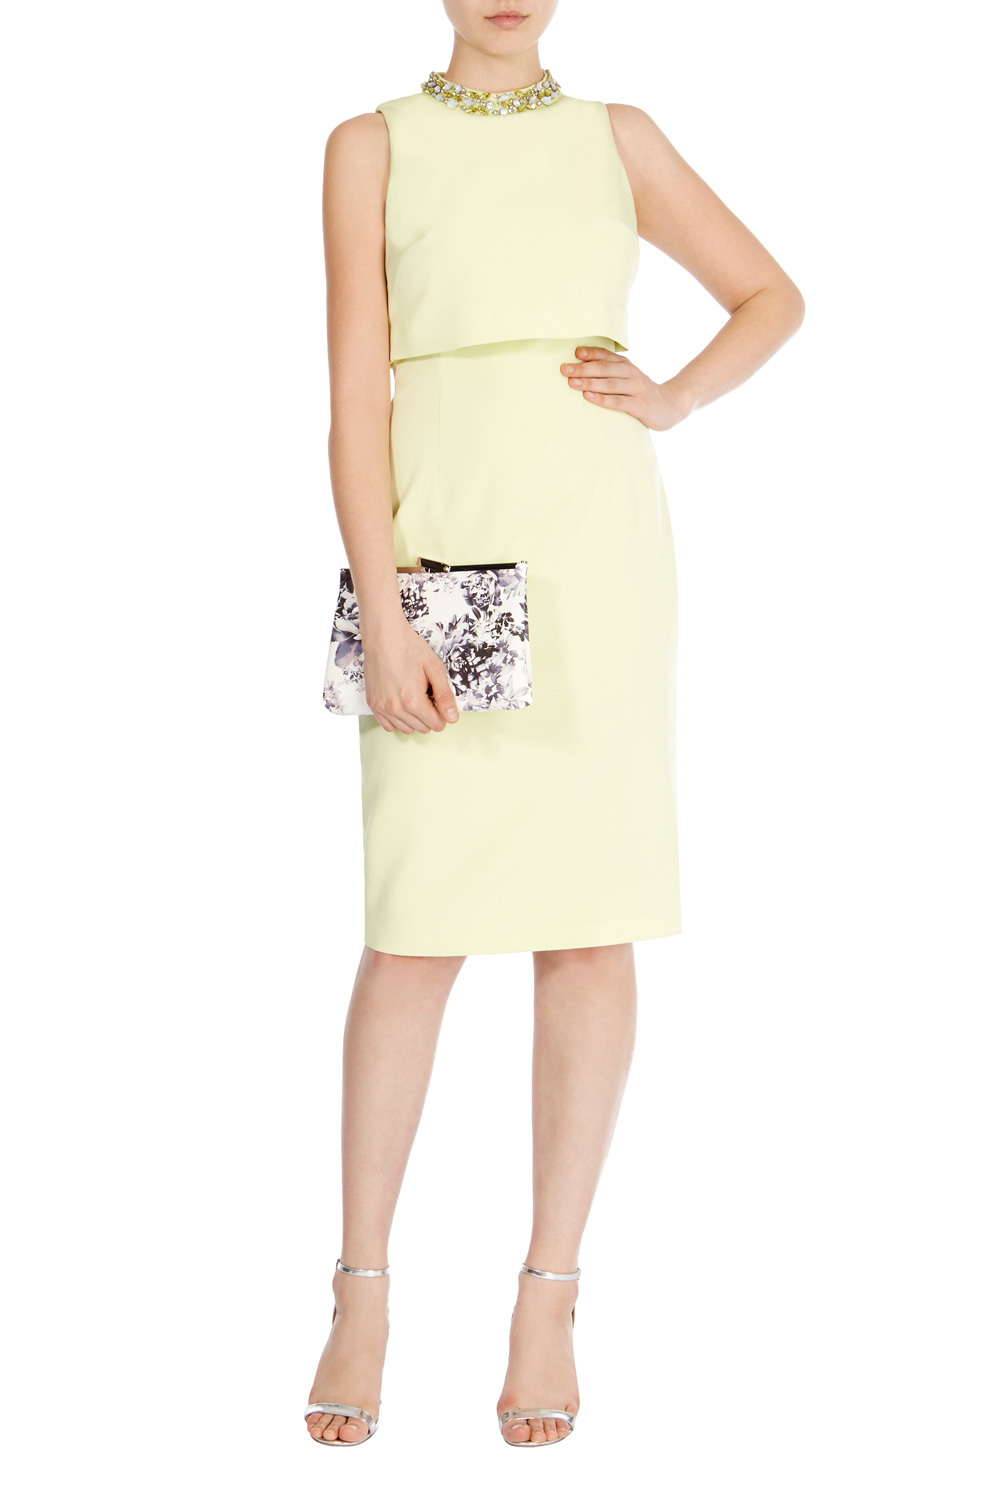 Petrina Shift Dress - style: shift; length: below the knee; fit: tailored/fitted; pattern: plain; sleeve style: sleeveless; neckline: high neck; bust detail: subtle bust detail; predominant colour: primrose yellow; secondary colour: primrose yellow; occasions: evening; fibres: viscose/rayon - stretch; sleeve length: sleeveless; pattern type: fabric; texture group: woven light midweight; embellishment: jewels/stone; season: s/s 2016; wardrobe: event